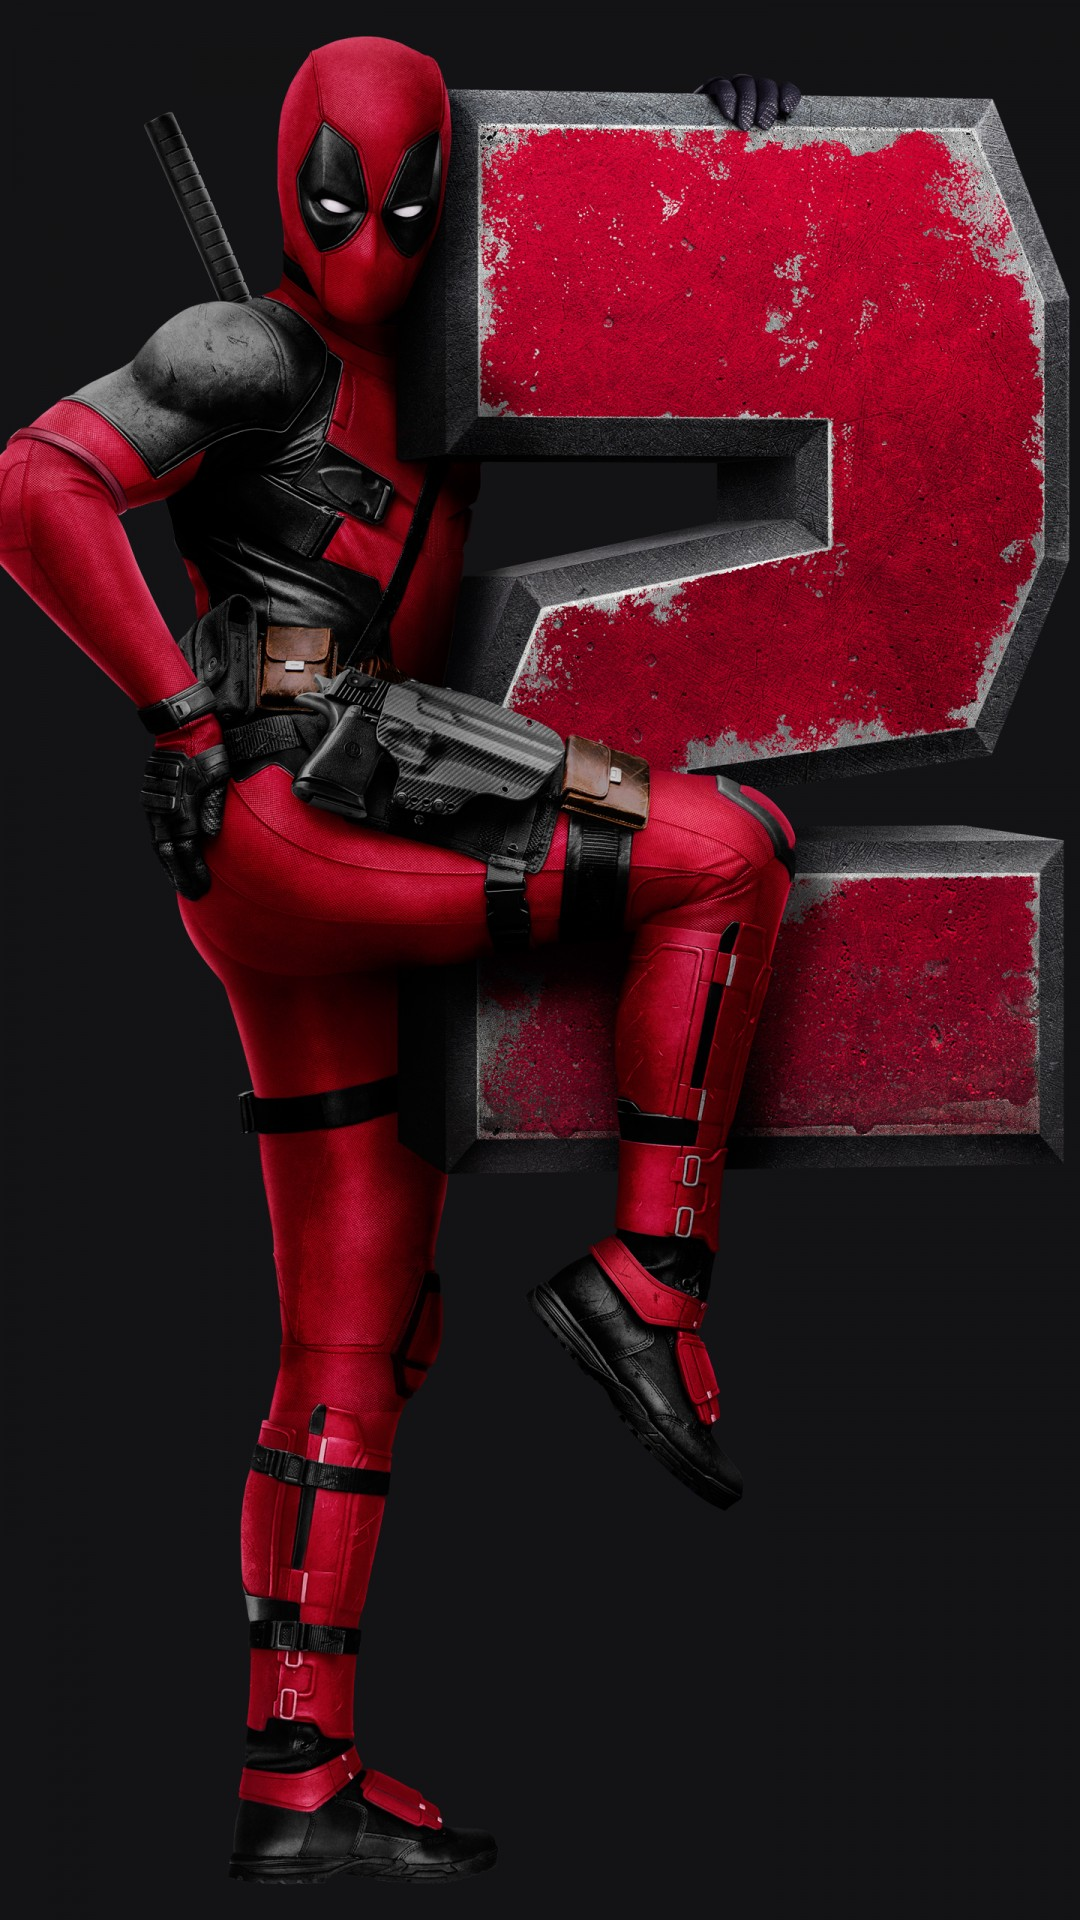 Deadpool Hd Wallpaper Iphone 6 Deadpool 2 4k 8k Wallpapers Hd Wallpapers Id 23637